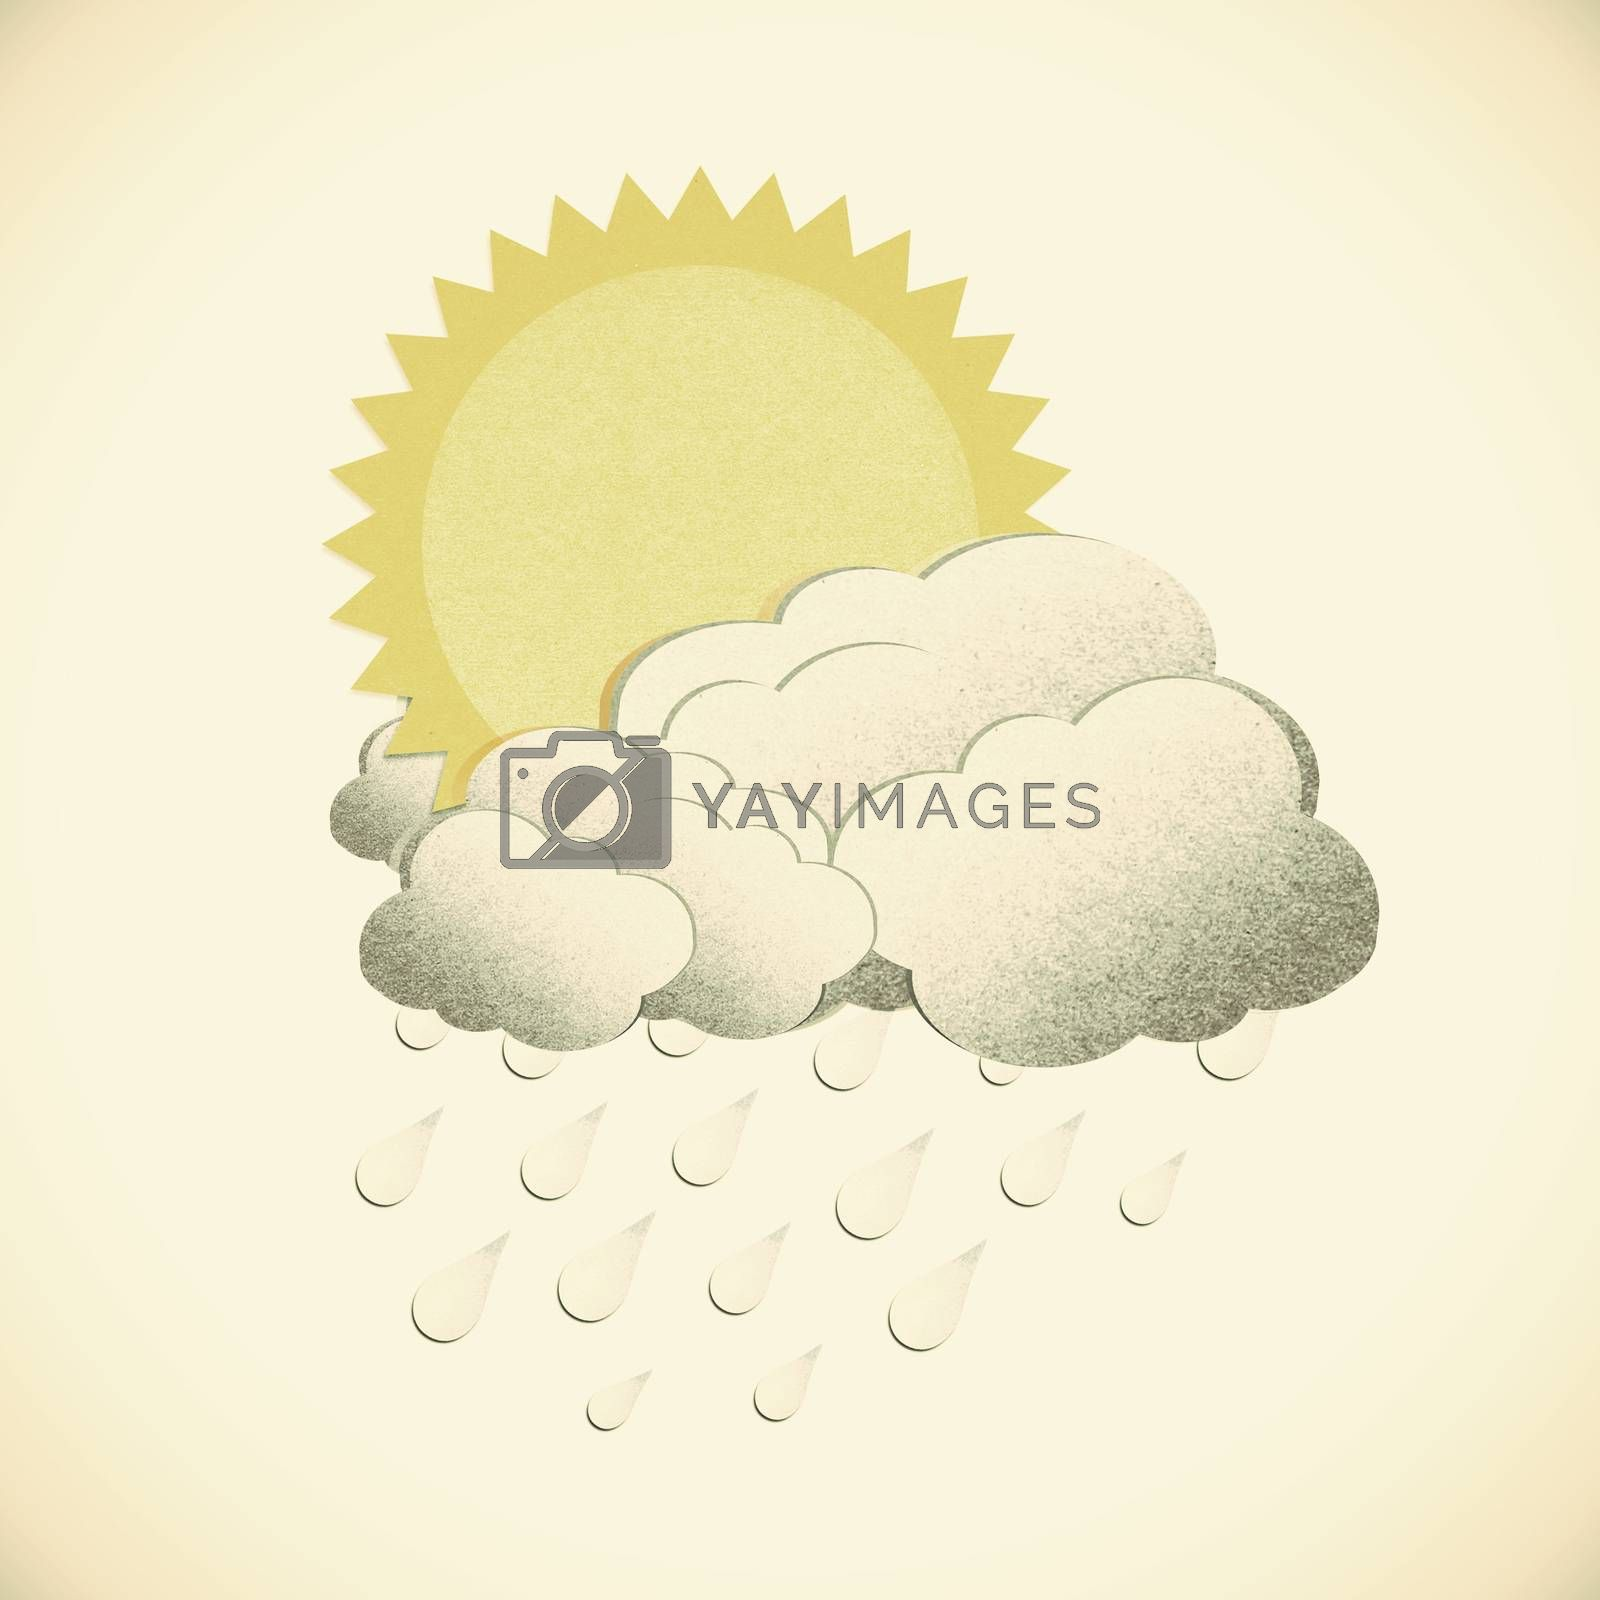 Grunge recycled paper sun with rain on vintage tone  background by jakgree